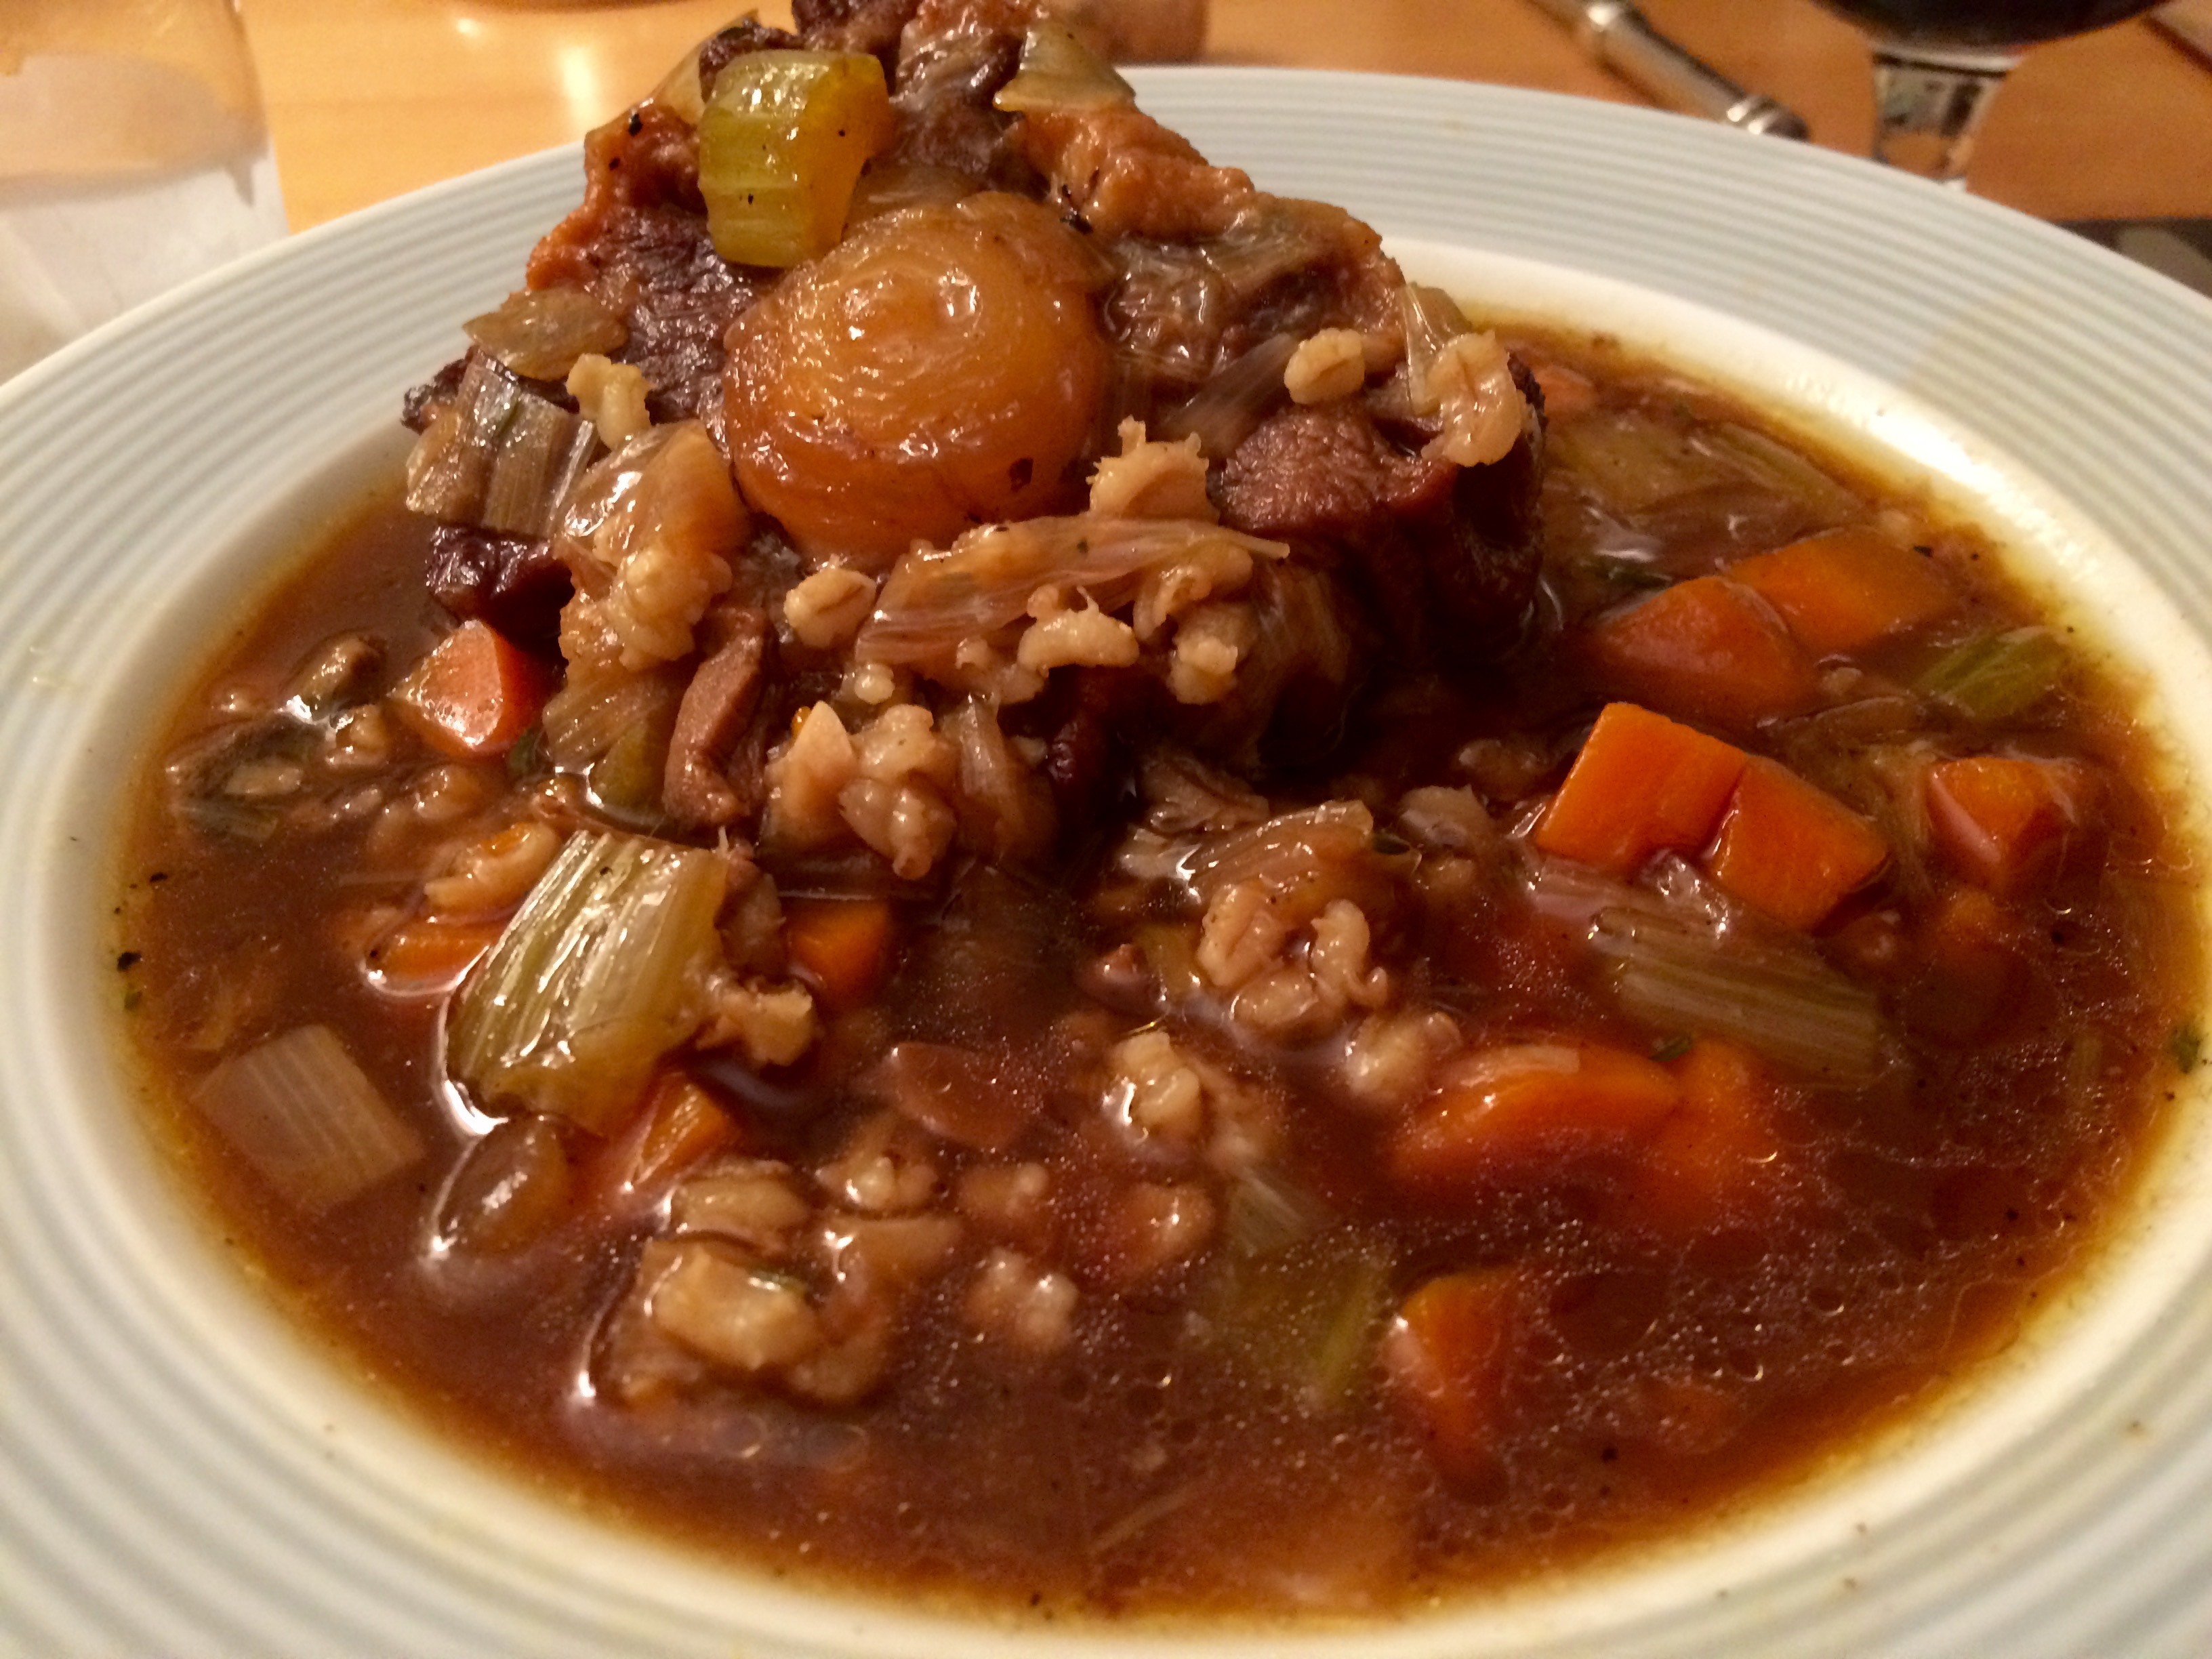 My Better Half Asked For Beef Barley A Childhood Favorite So After Searching My Cookbooks And The Internet